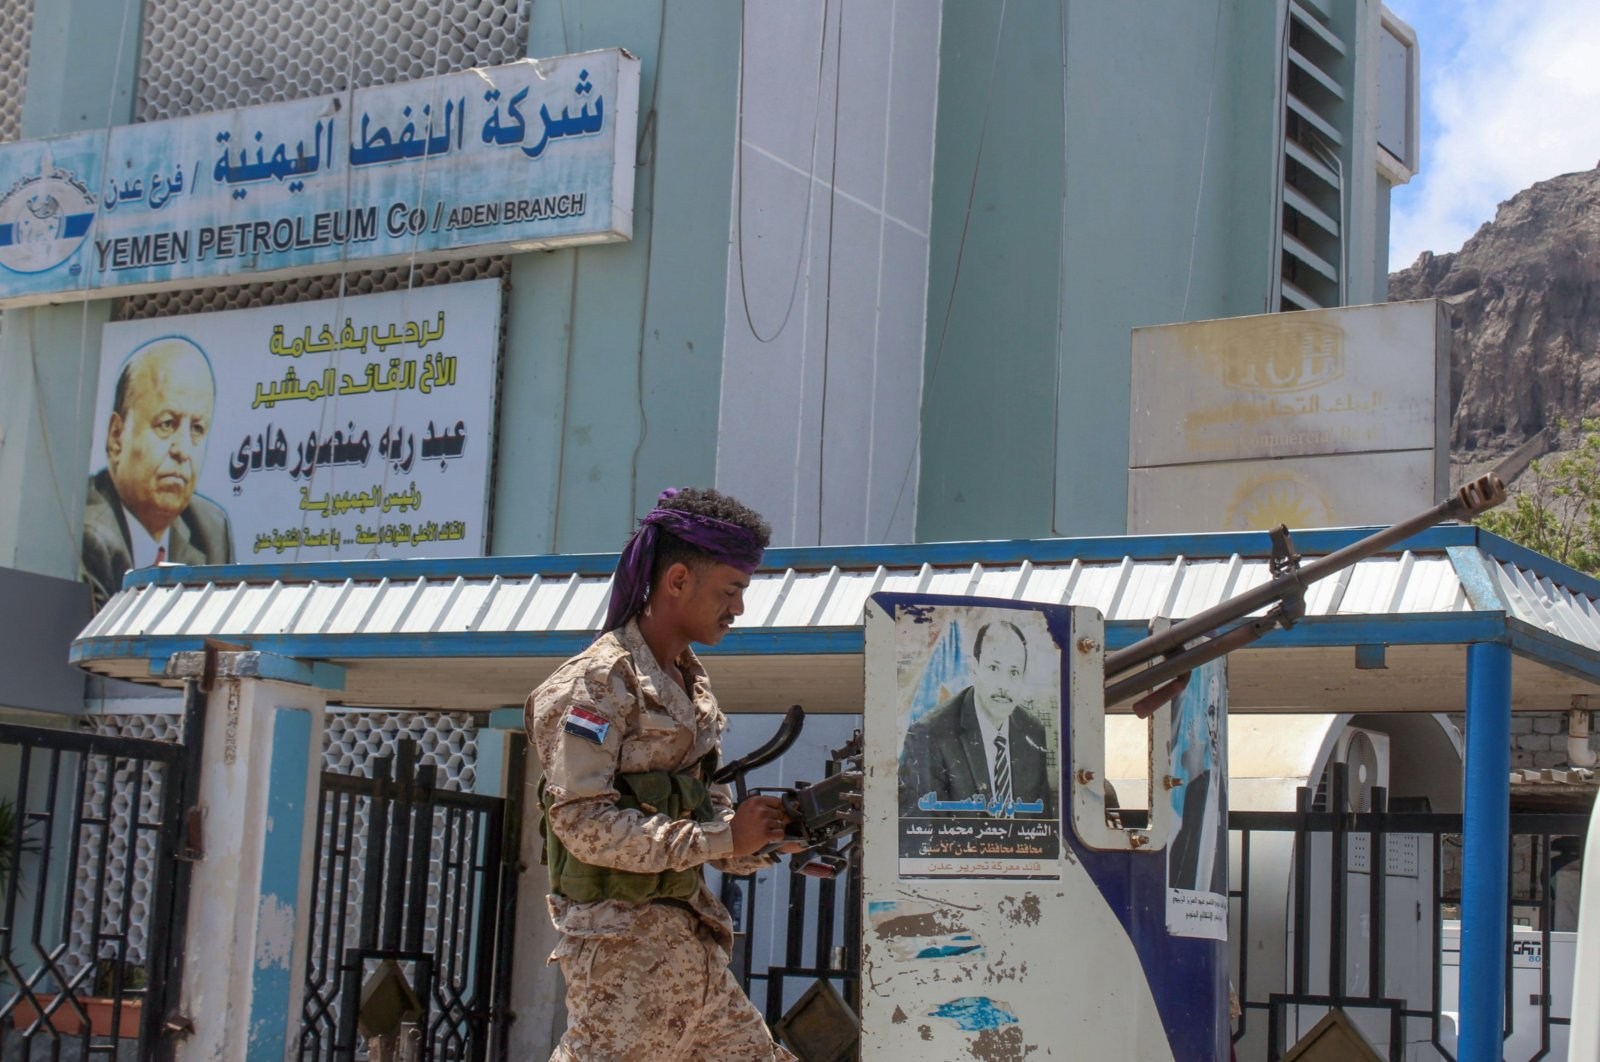 A fighter with Yemen's UAE-backed separatist Southern Transitional Council (STC) mans a gun in the back of a truck advancing past the Yemen Petroleum Co.'s branch in the southern city of Aden, April 26, 2020. (AFP Photo)